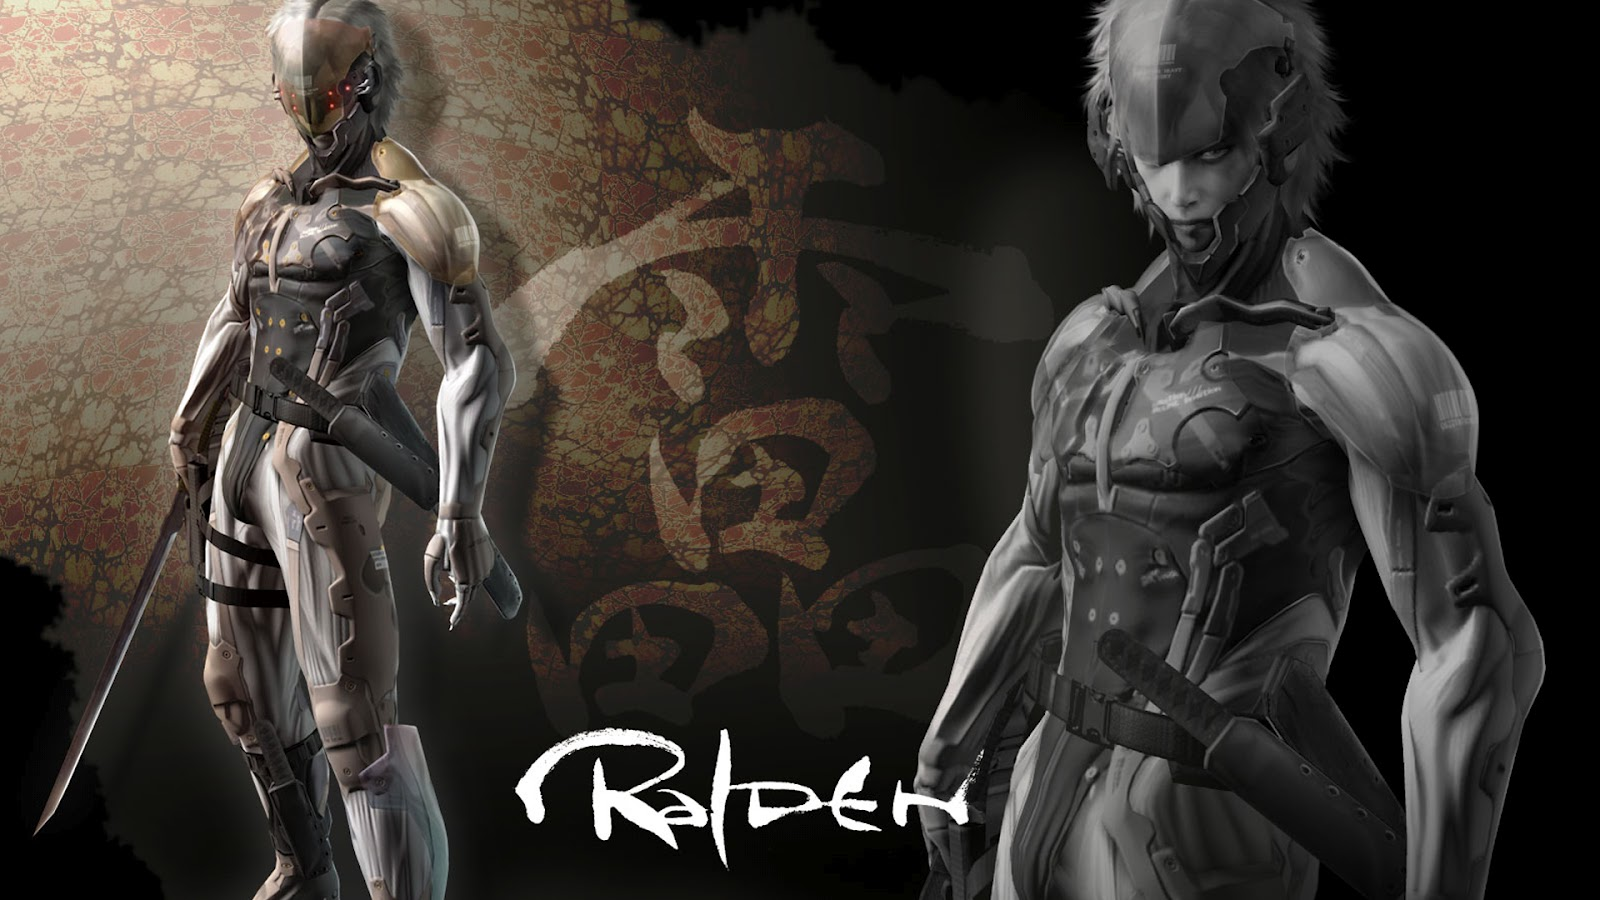 metal gear solid 4 wallpaper 1920 x 1080 raiden 0 Metal Gear Solid 4: Guns of the Patriots Wallpapers in HD